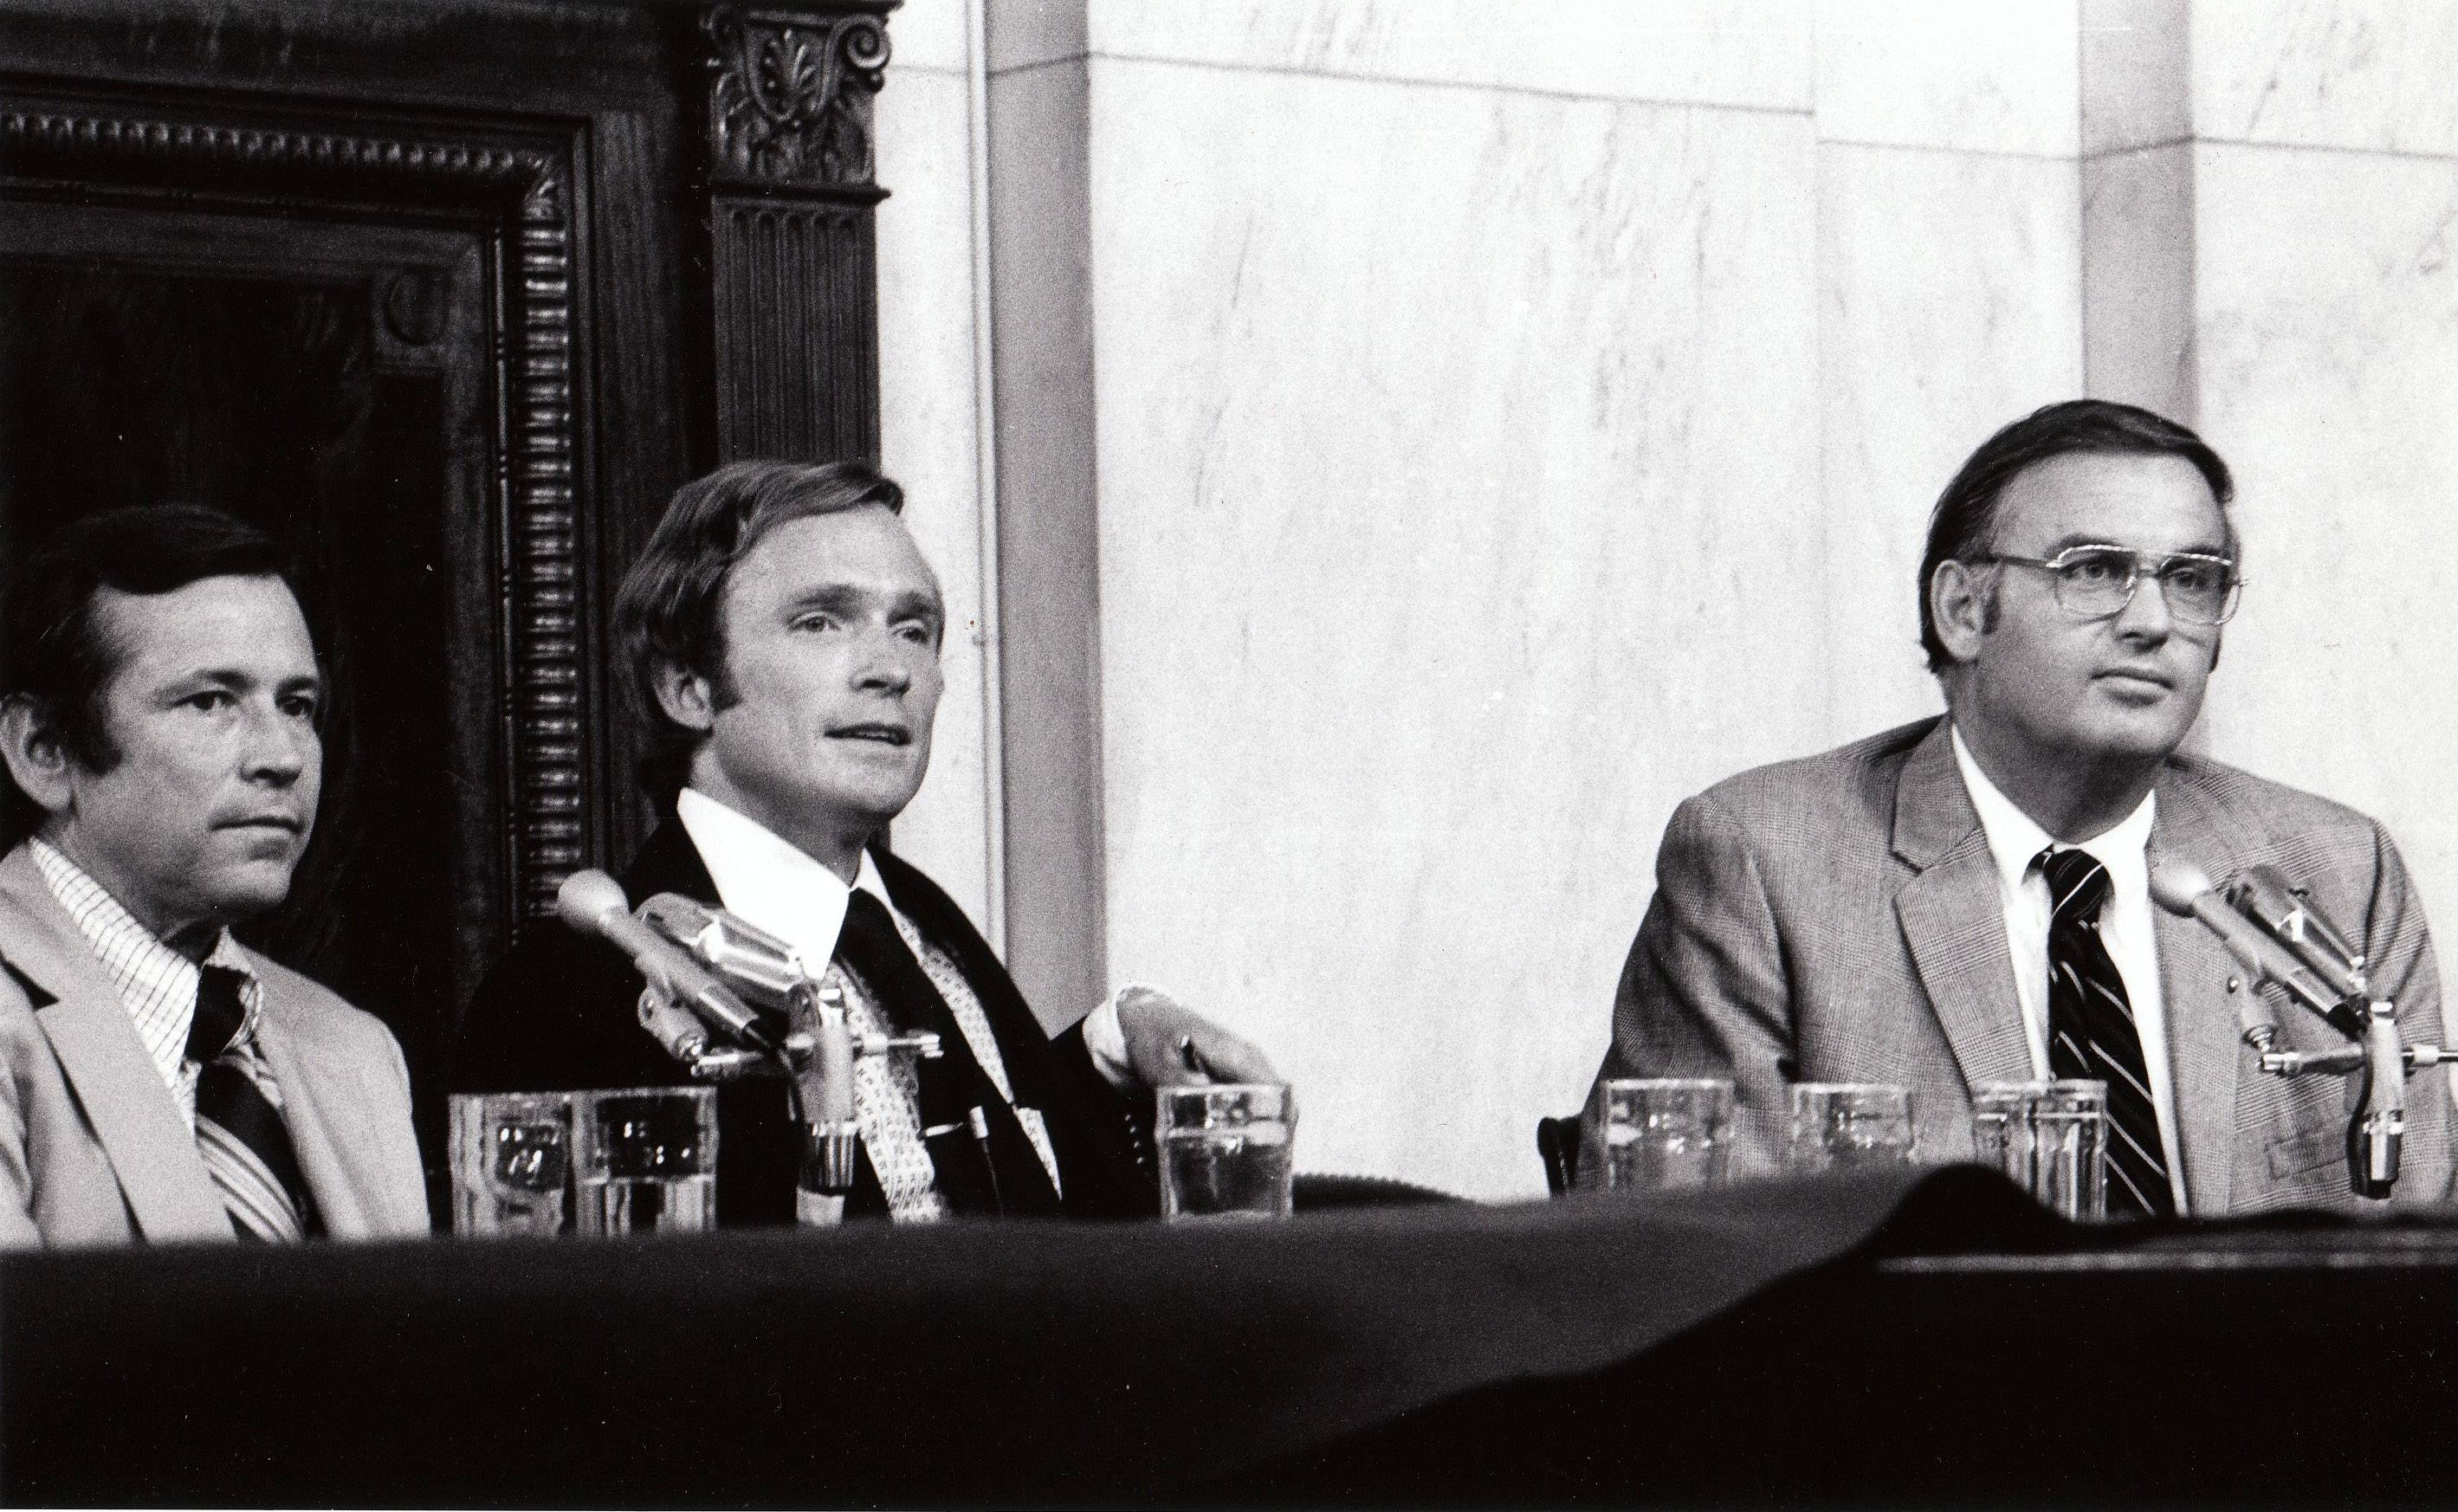 Seeing Watergate through Dick Cavett's eyes